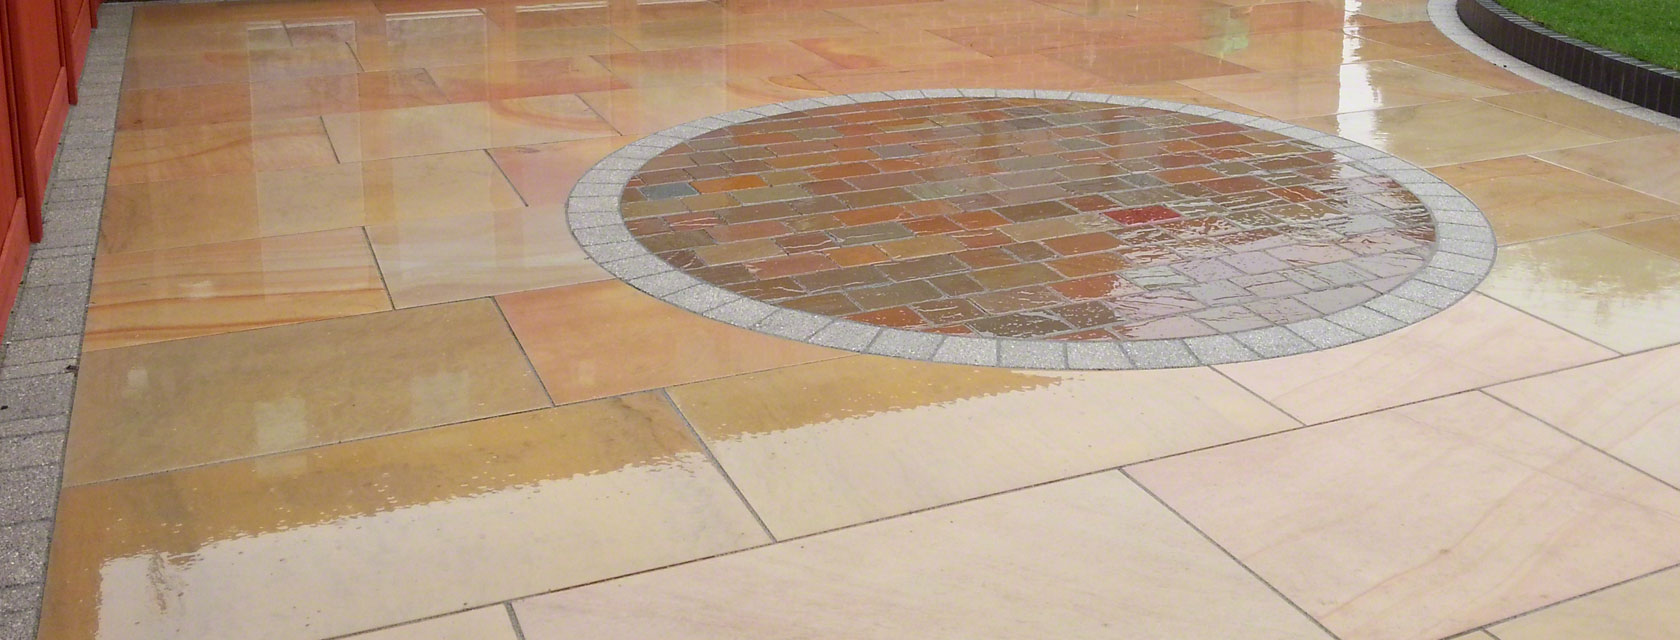 Ethically Sourced Fairstone Patio in Bolton